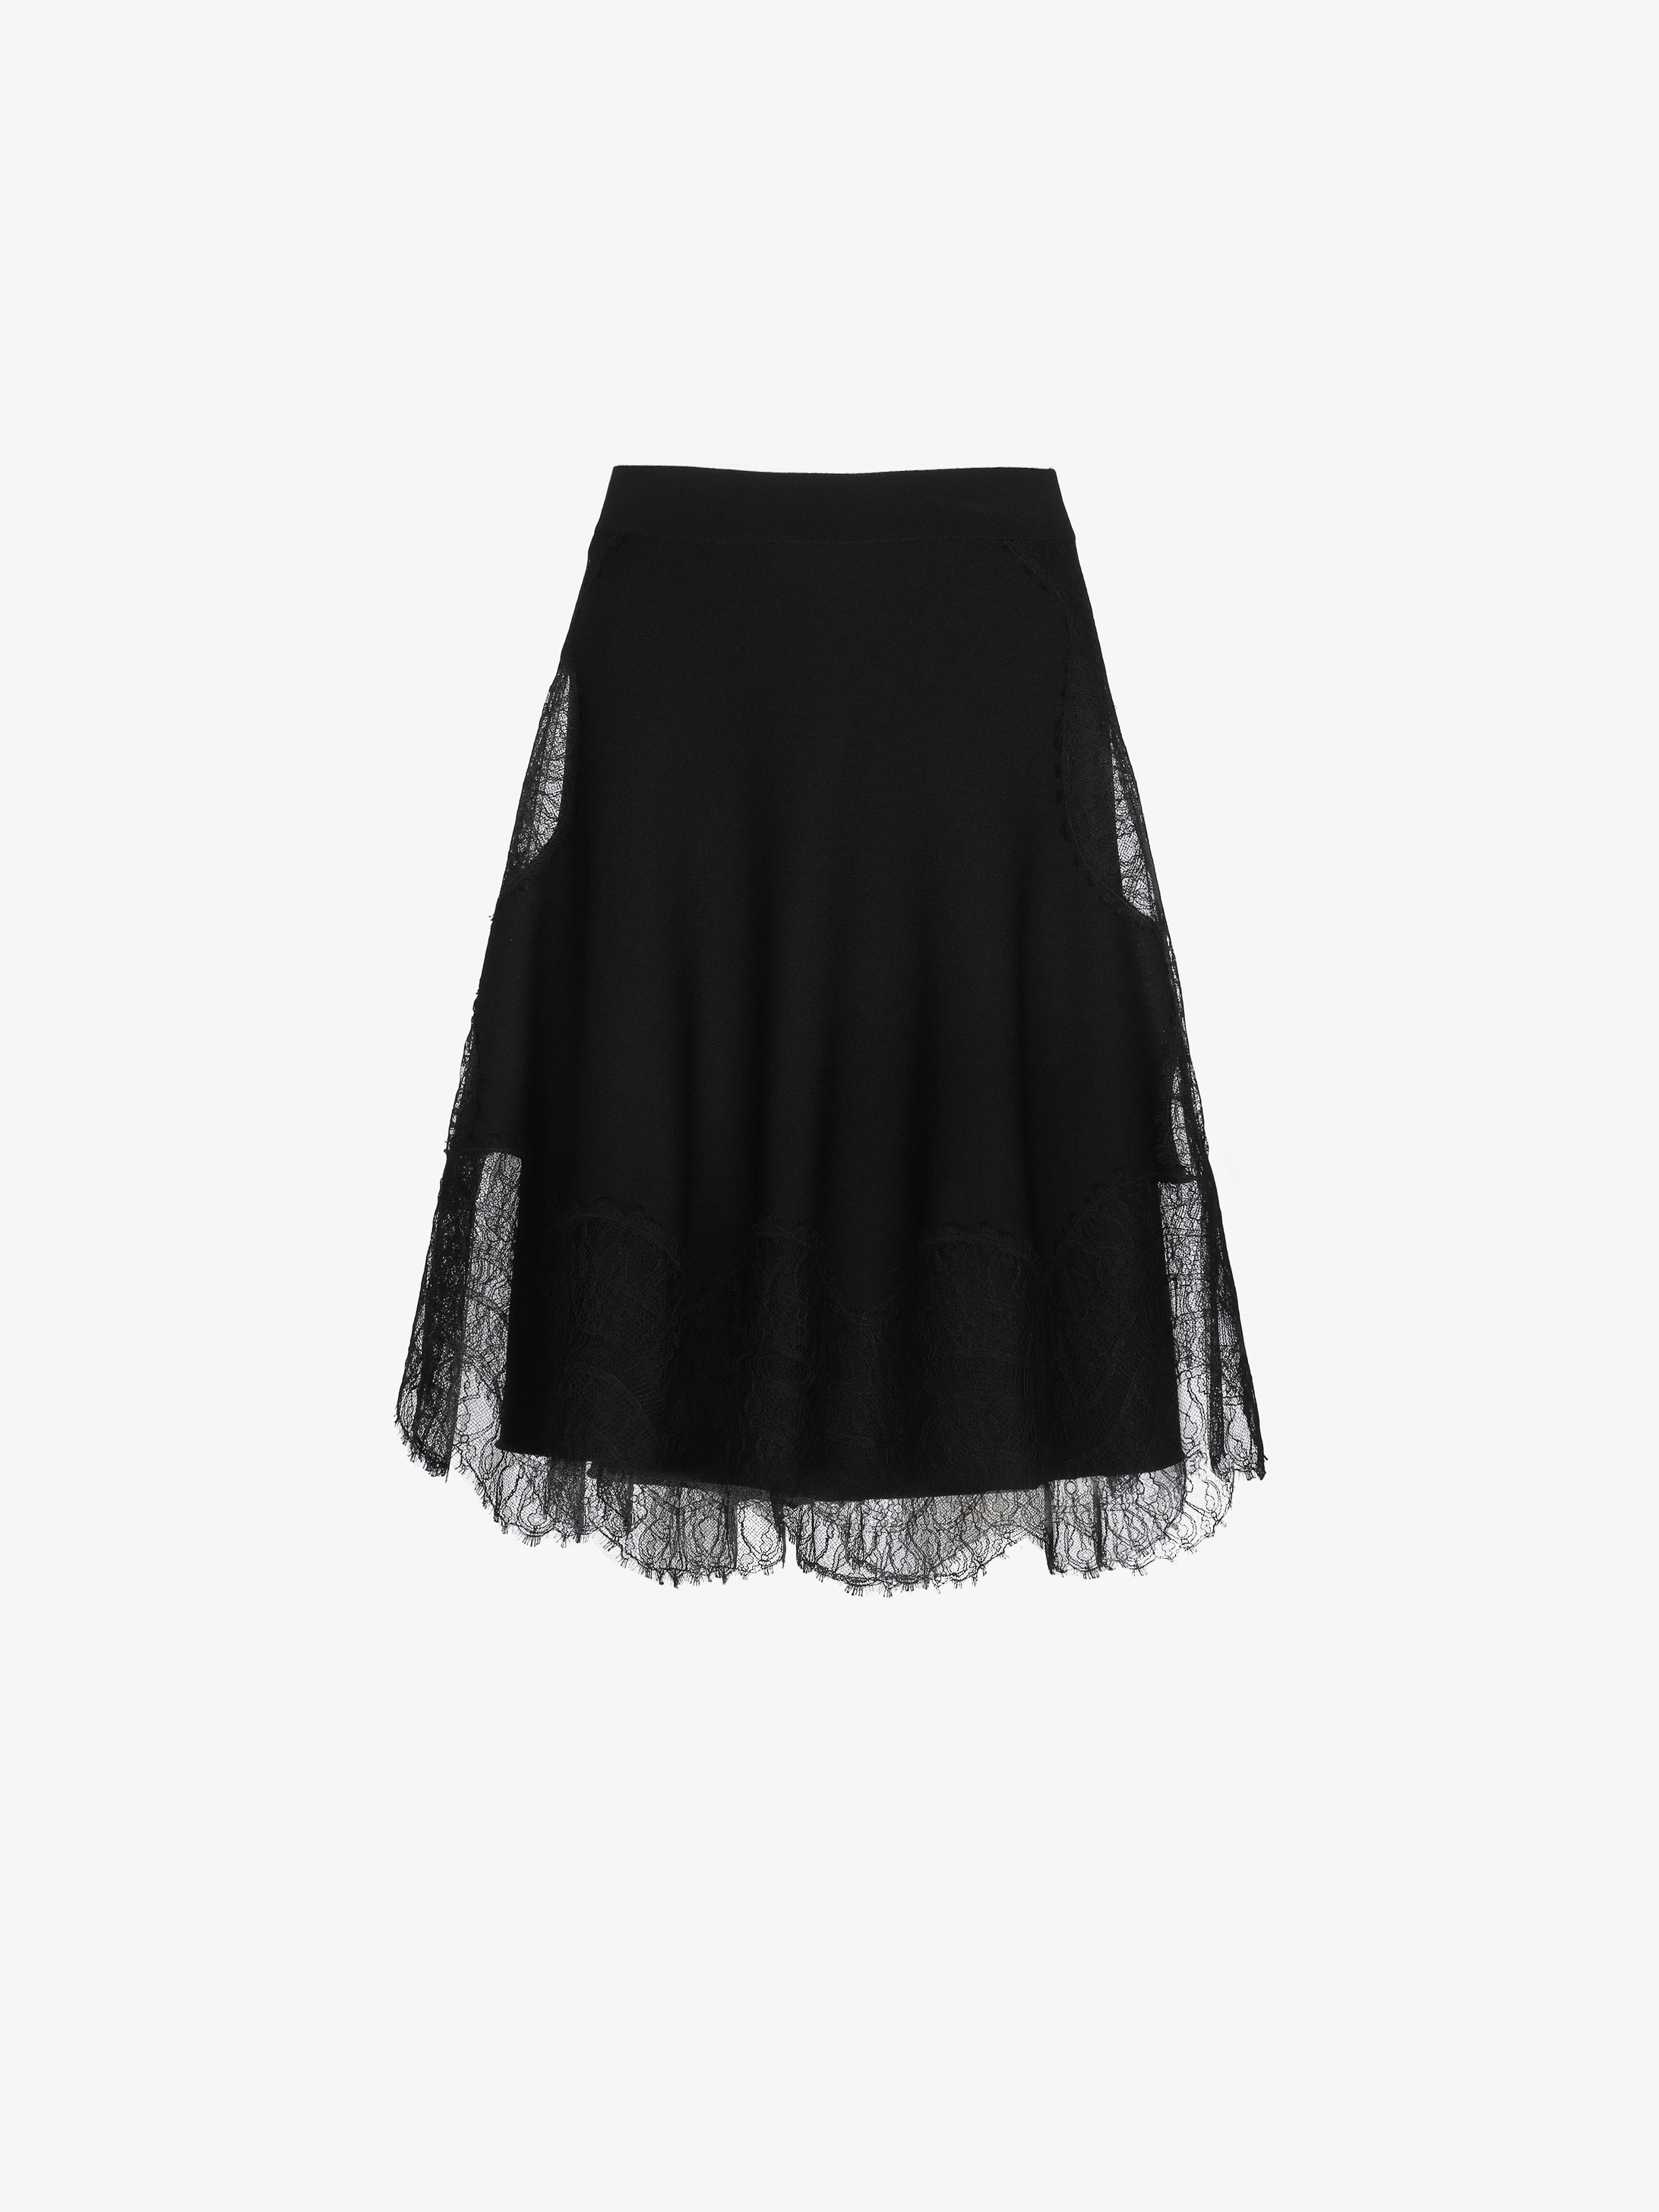 A-line skirt in crêpe viscose and lace